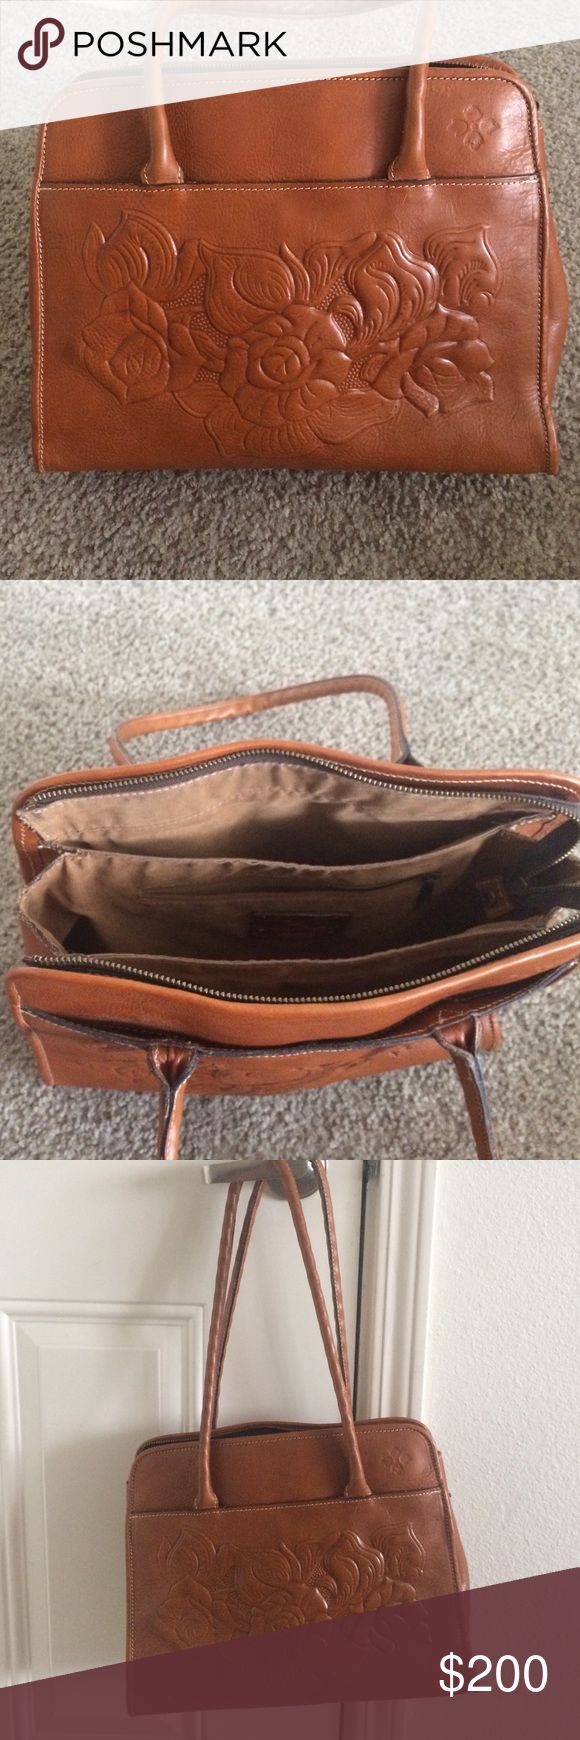 Patricia Nash!!!! Beautiful Patricia Nash bag!!!!  The leather and design on this beautiful bag are magnificent. Willing to trade for like value Patricia Nash Bags Satchels